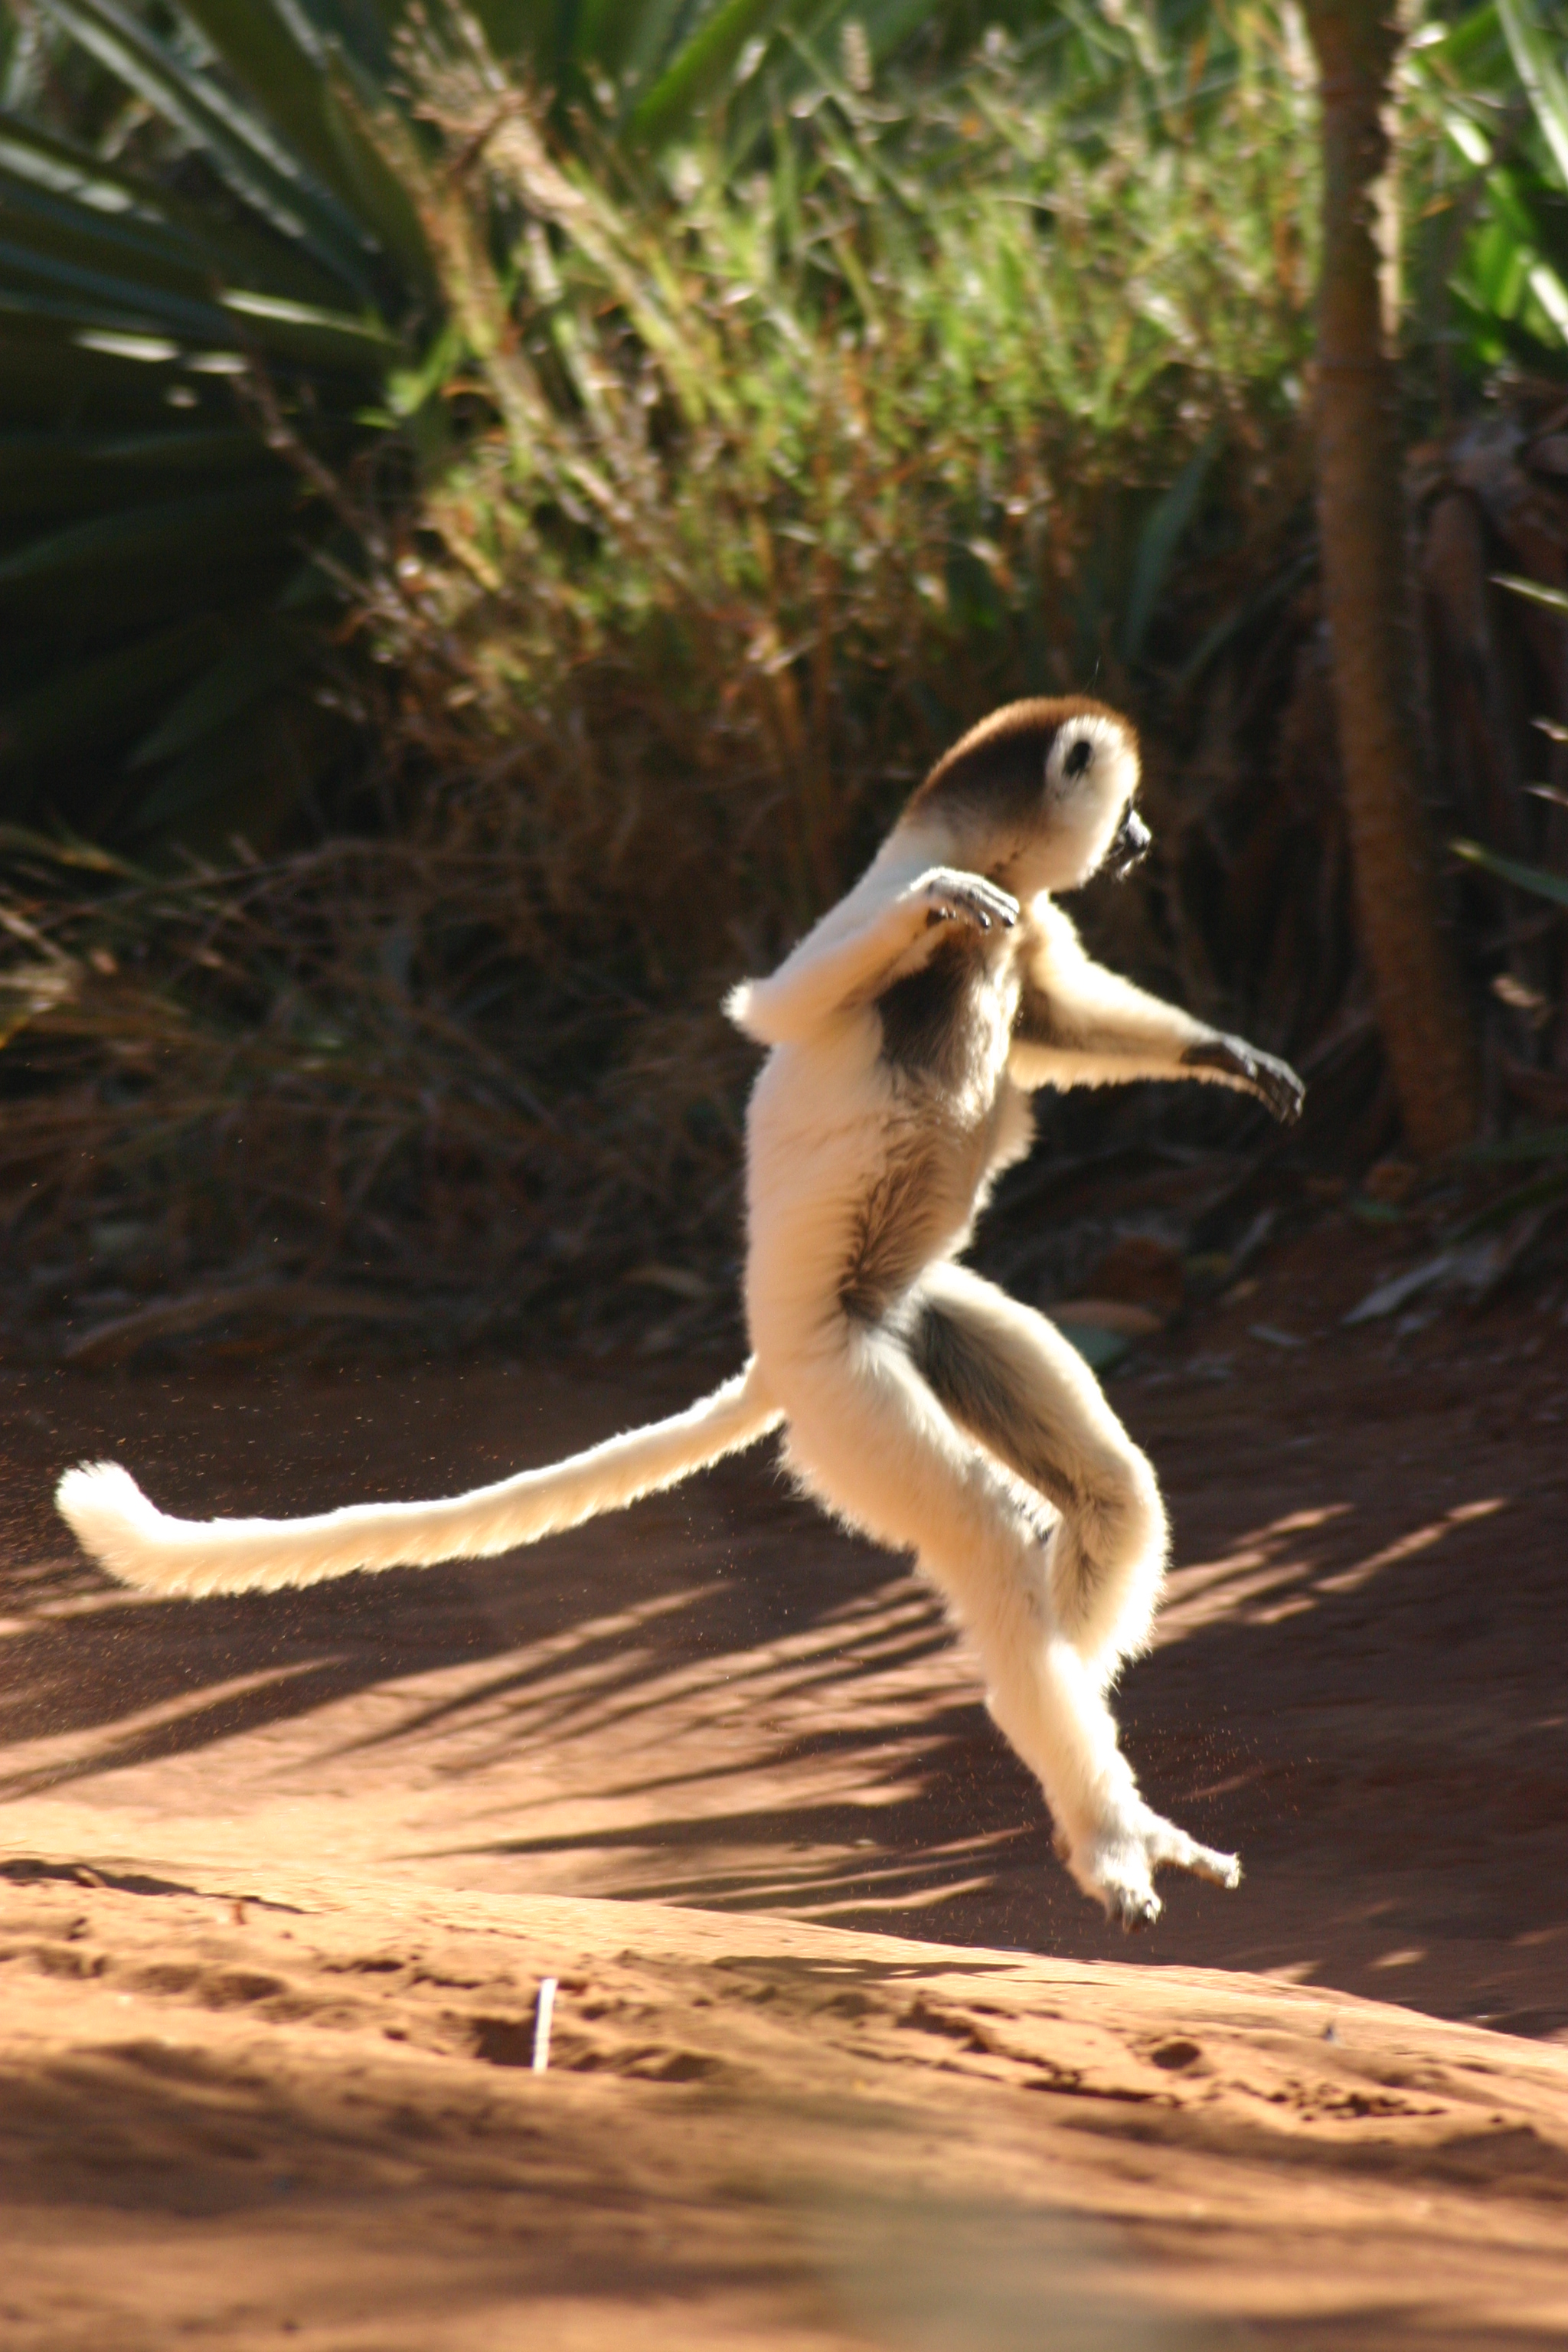 An upright Coquerel's sifaka hops sideways with its arms at chest height.